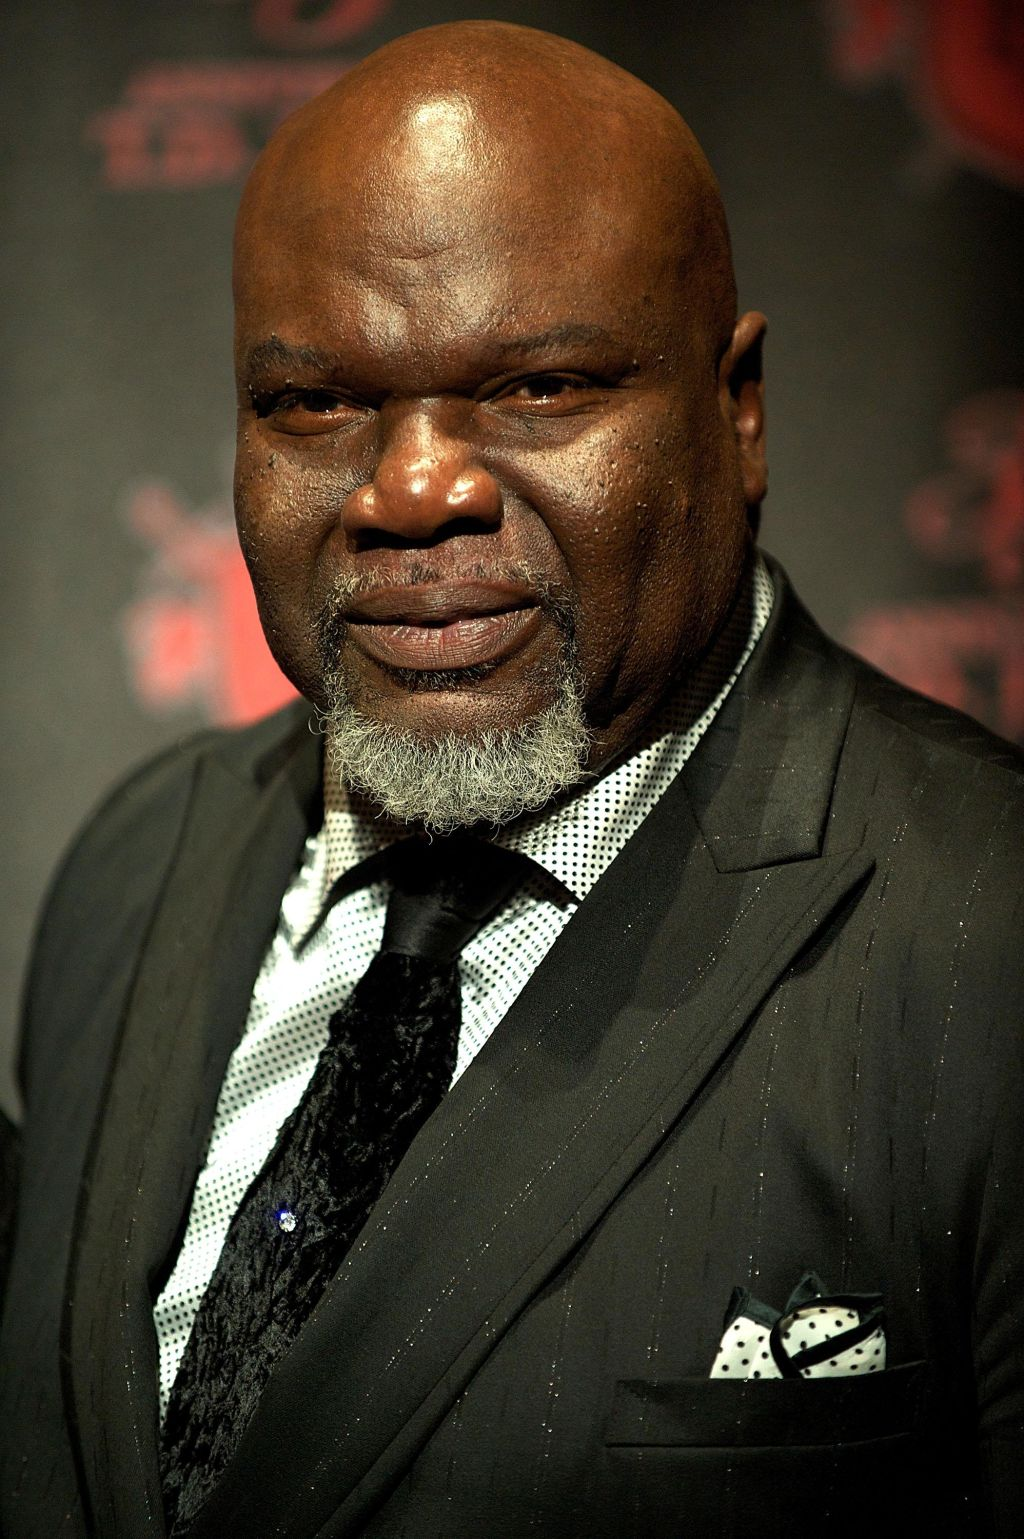 Tyler Perry And Soledad O'Brien Host Gala Honoring Bishop T.D. Jakes' 35 Years Of Ministry